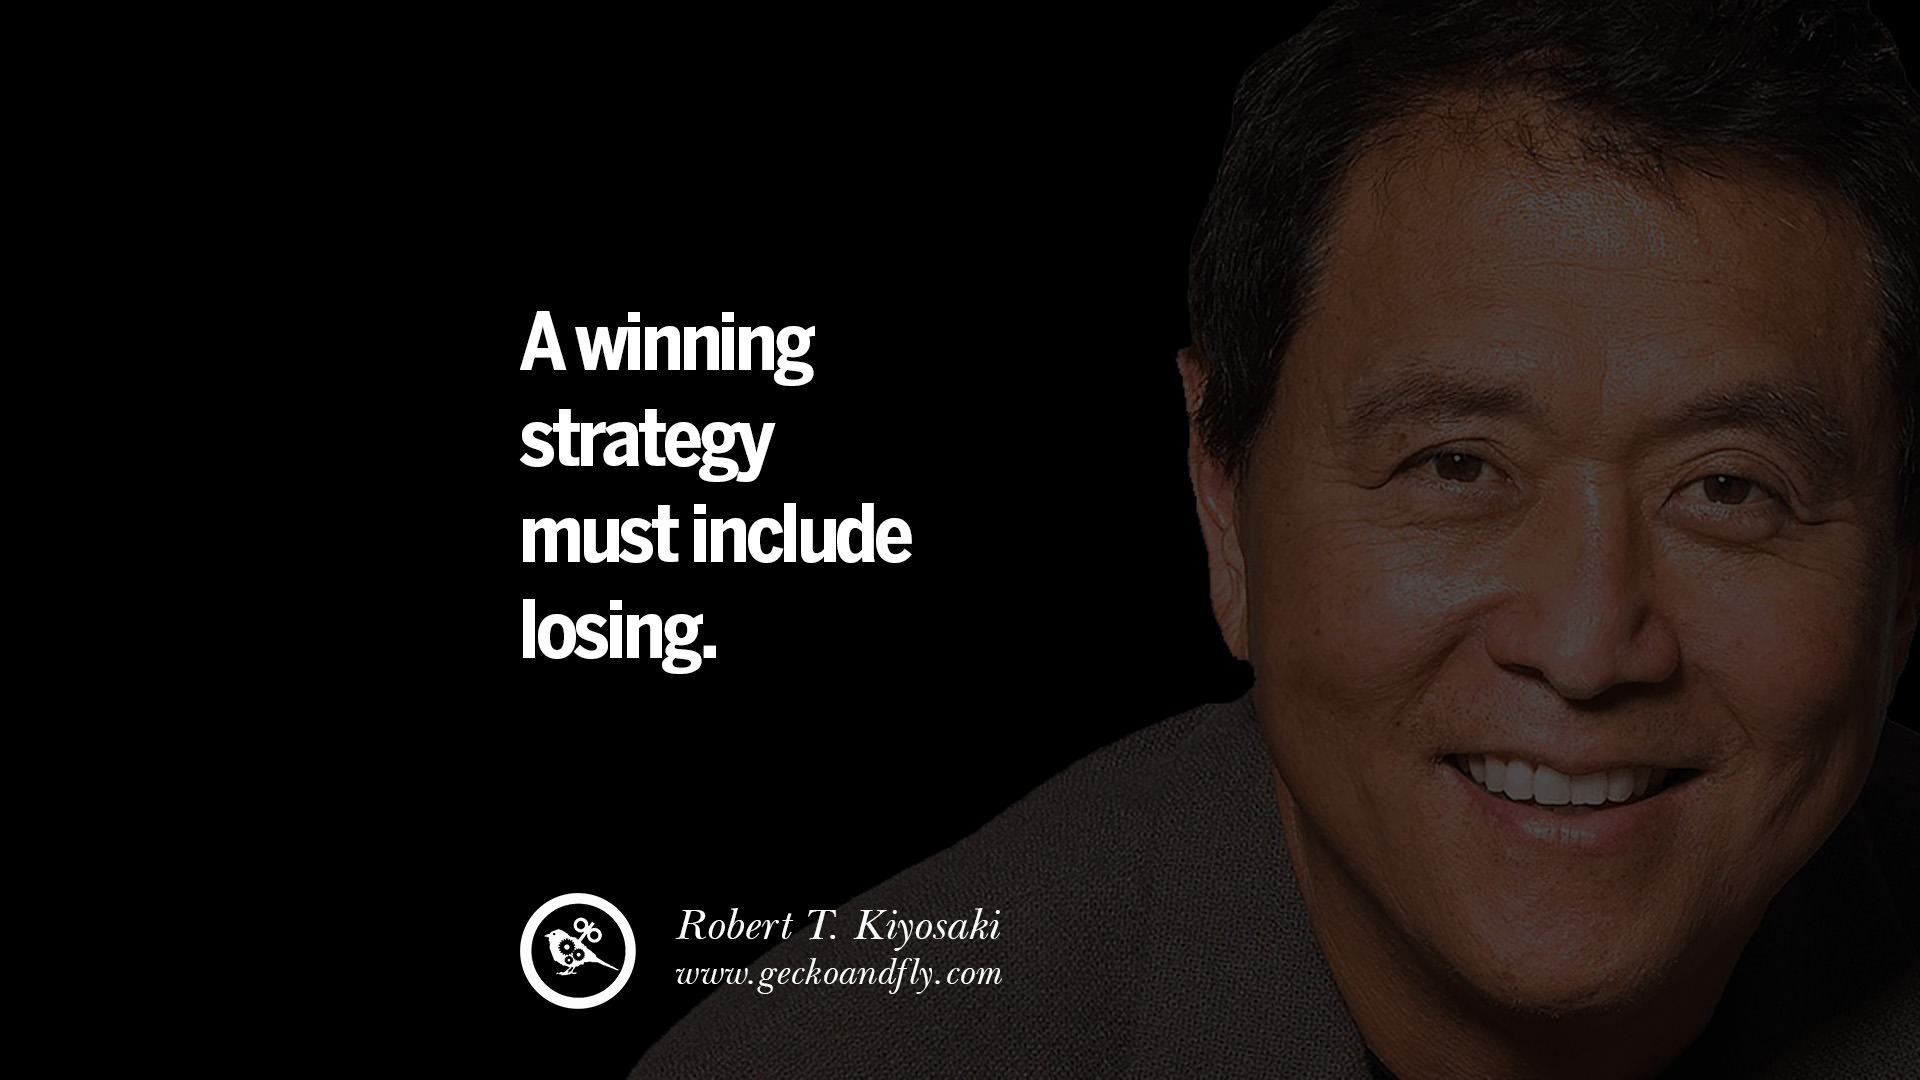 Quotes From The First Part Last: 60 Robert Kiyosaki Quotes From Rich Dad Book On Investing